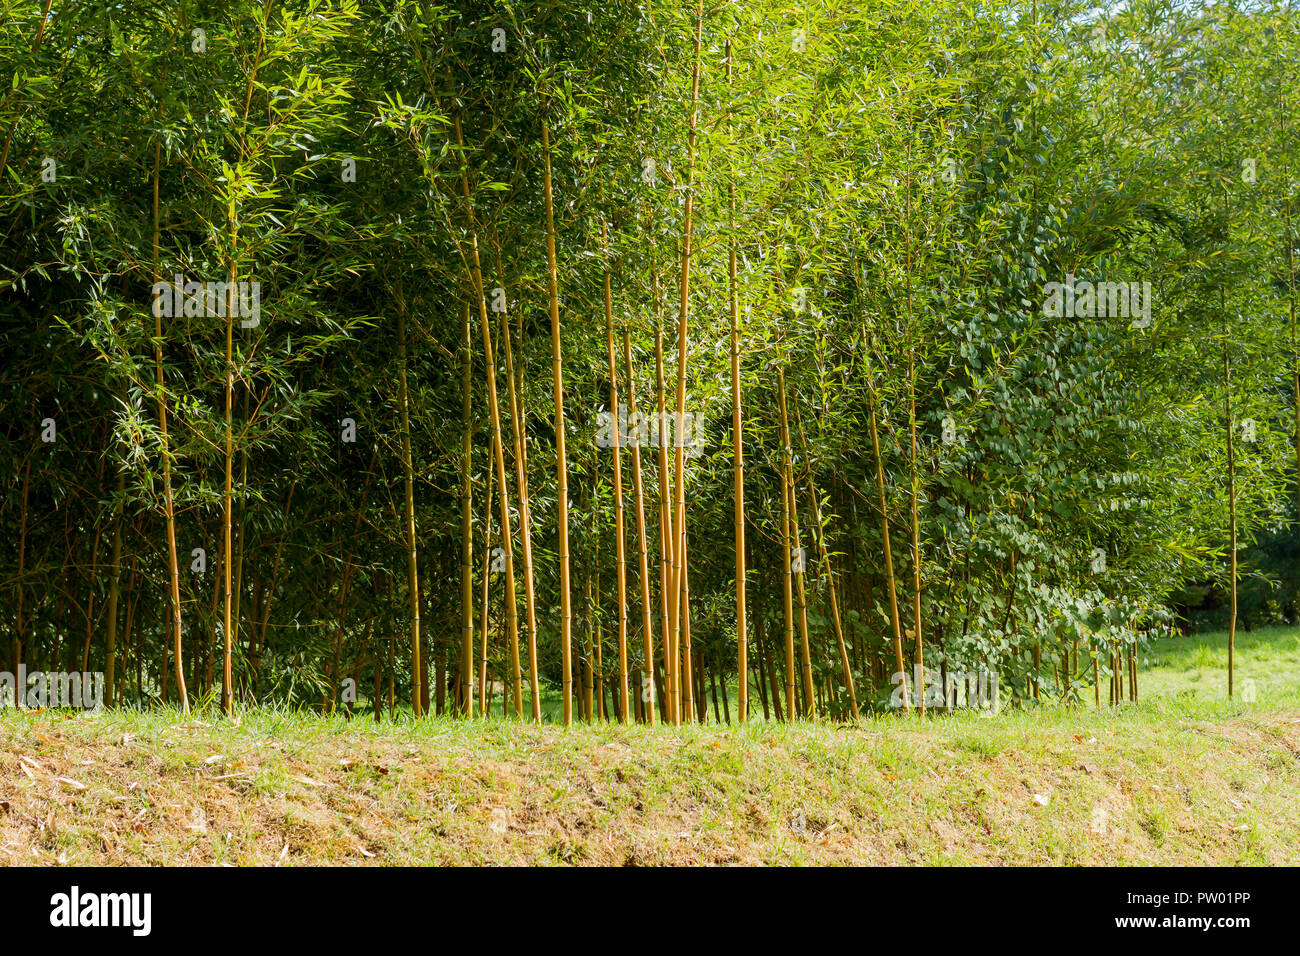 Bamboo trees bathed in autumn sunshine, UK - Stock Image